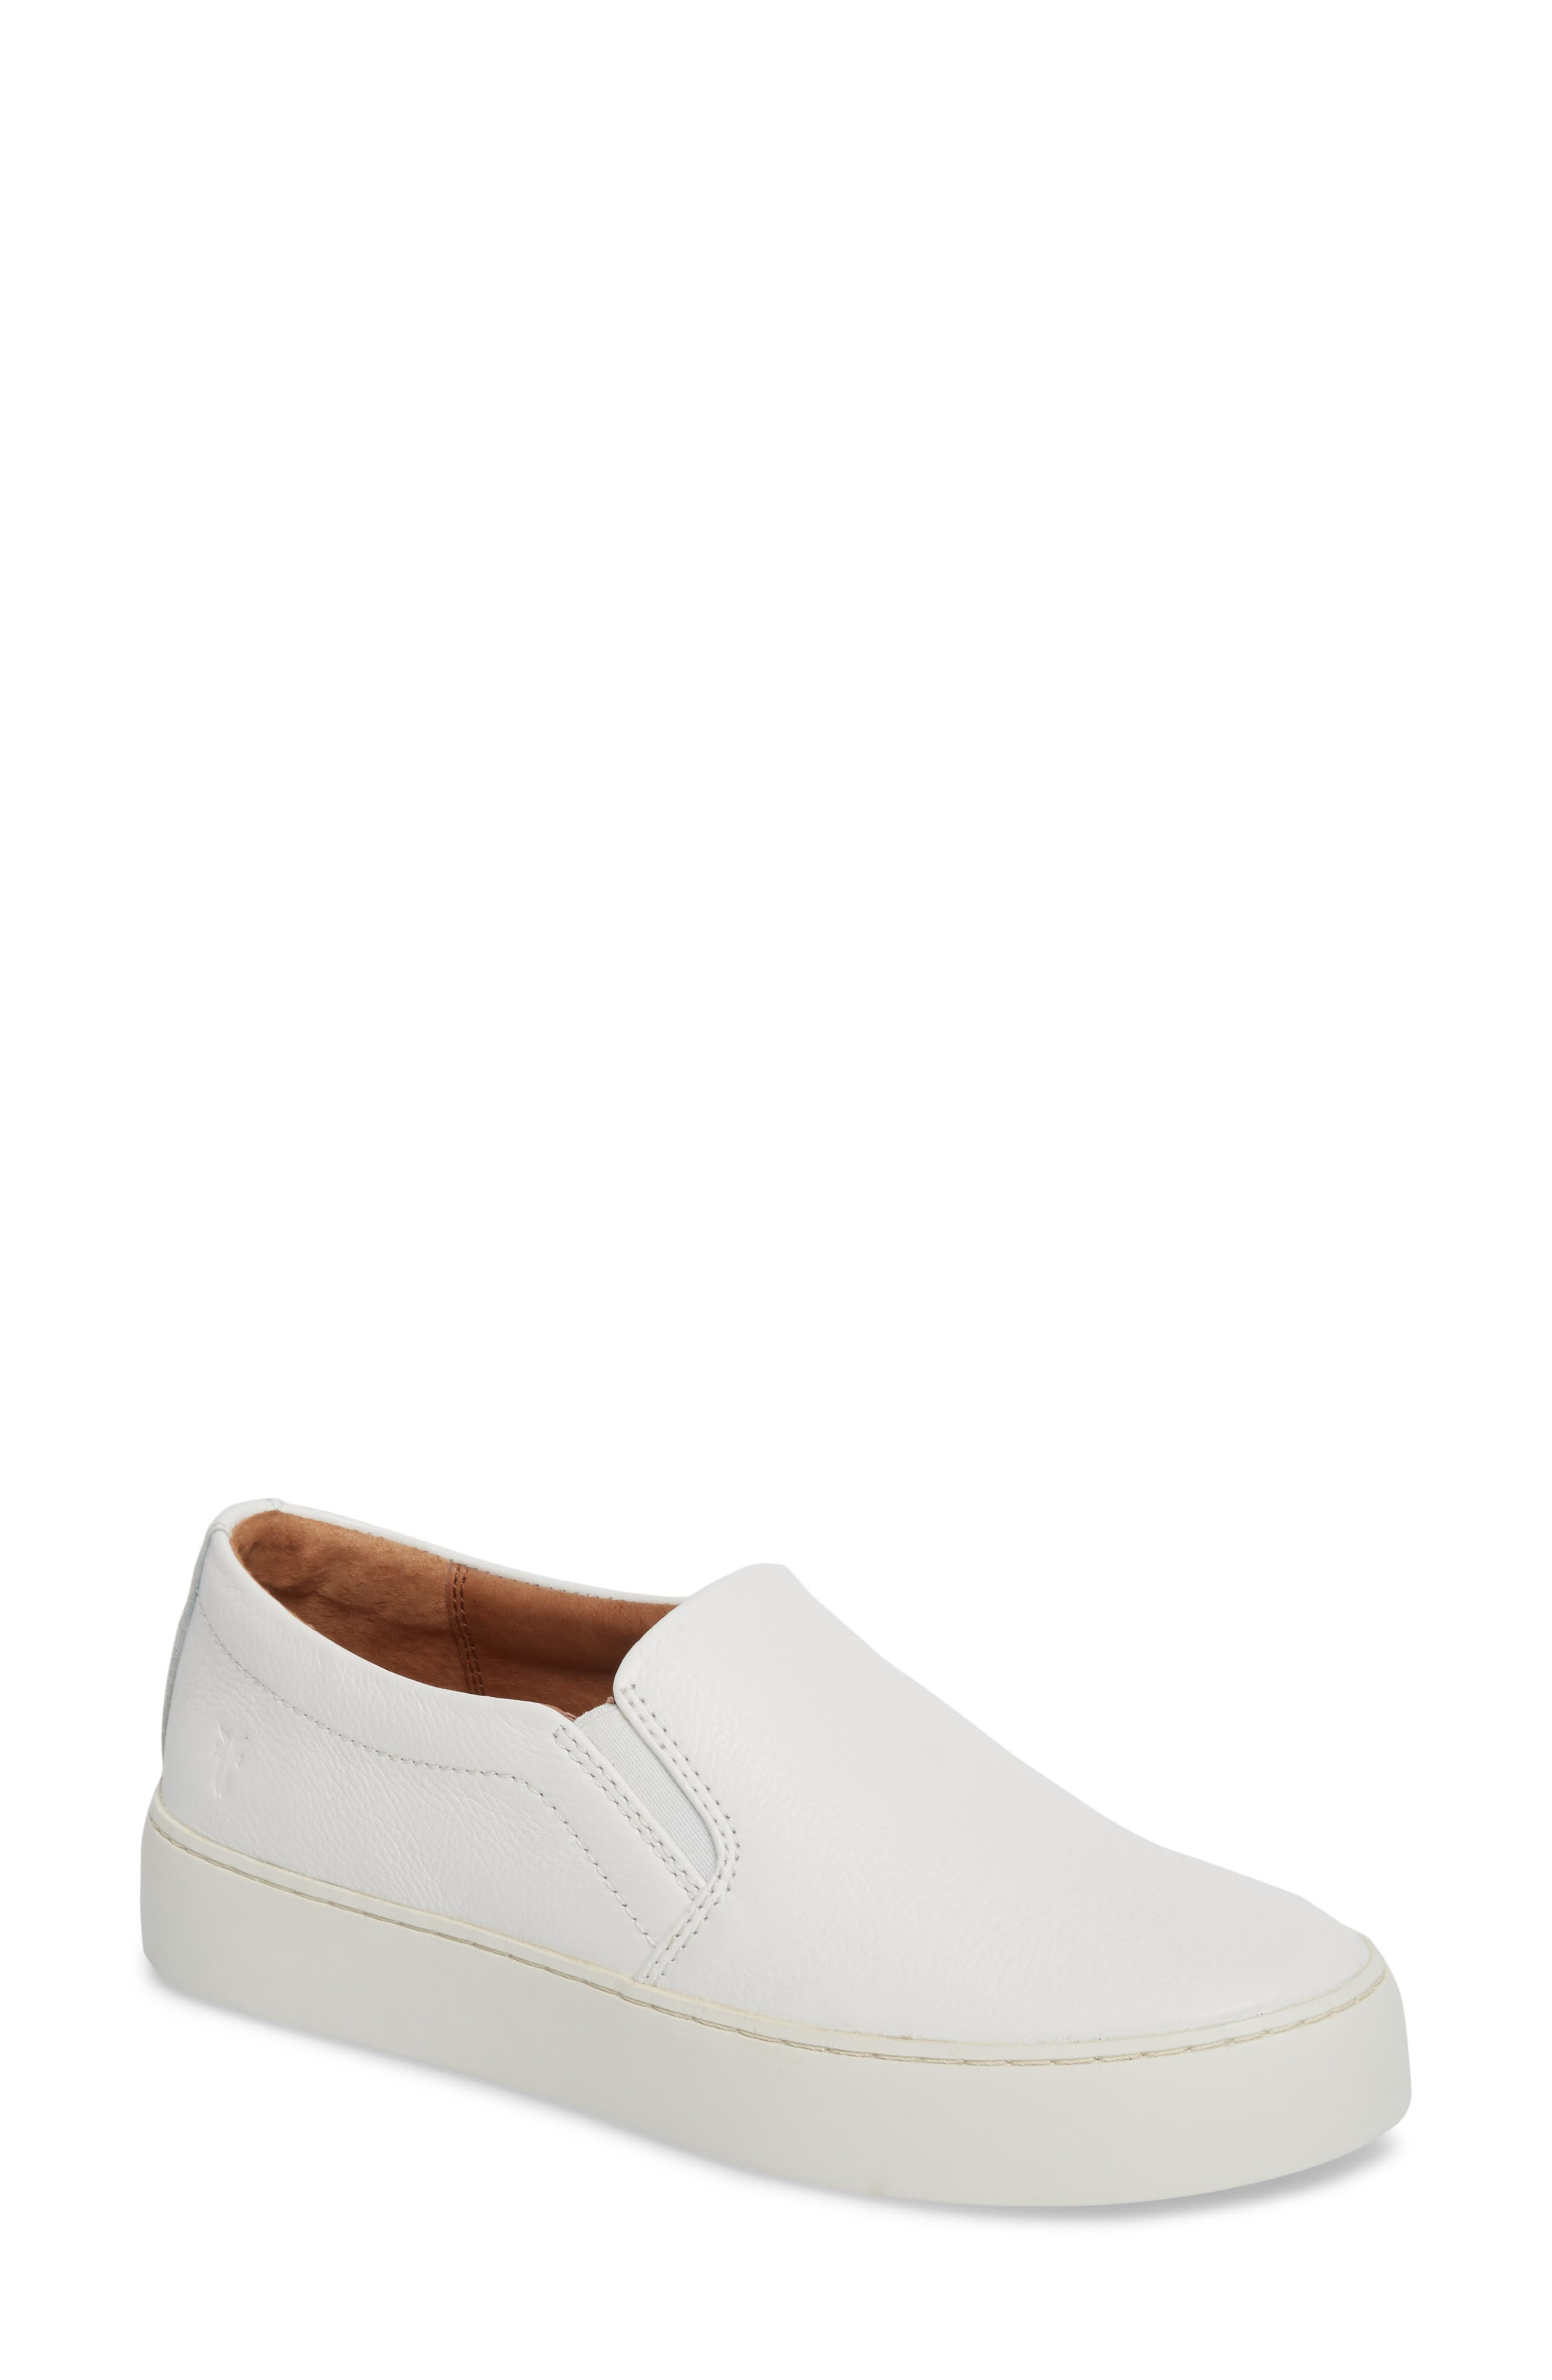 Lena Slip-On Sneaker,                         Main,                         color, White Leather